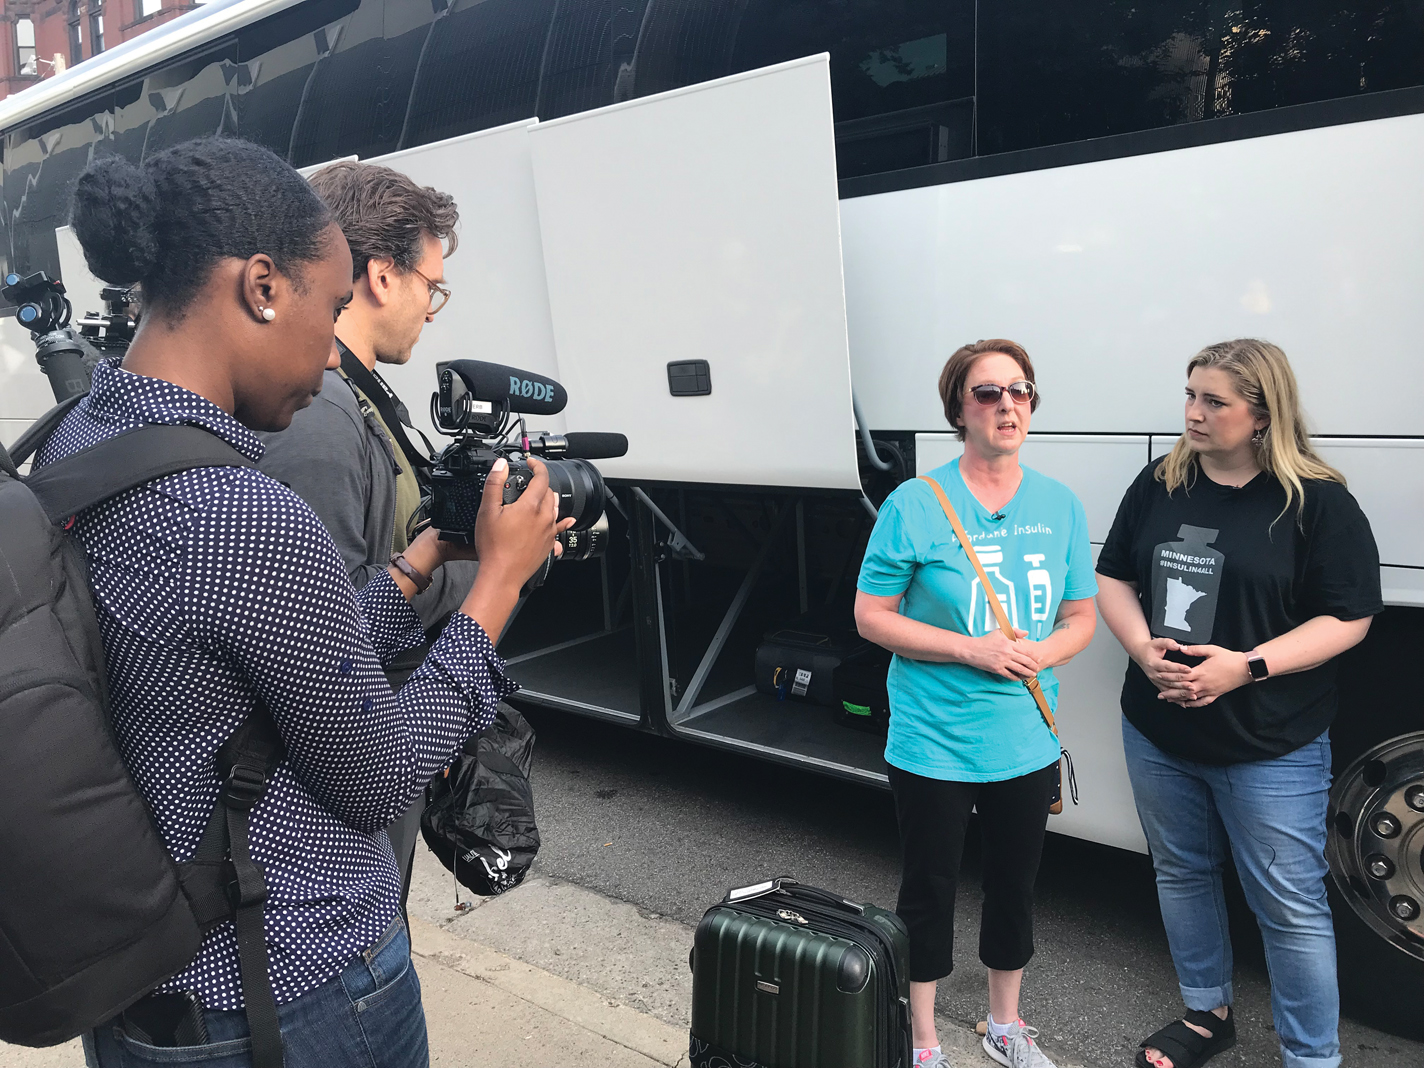 From left: Two identical bottles of insulin (U.S. on the left, Canadian on the right); Nicole Smith-Holt (blue shirt) and Quinn Nystrom (black shirt) speak to the media before leaving Minnesota